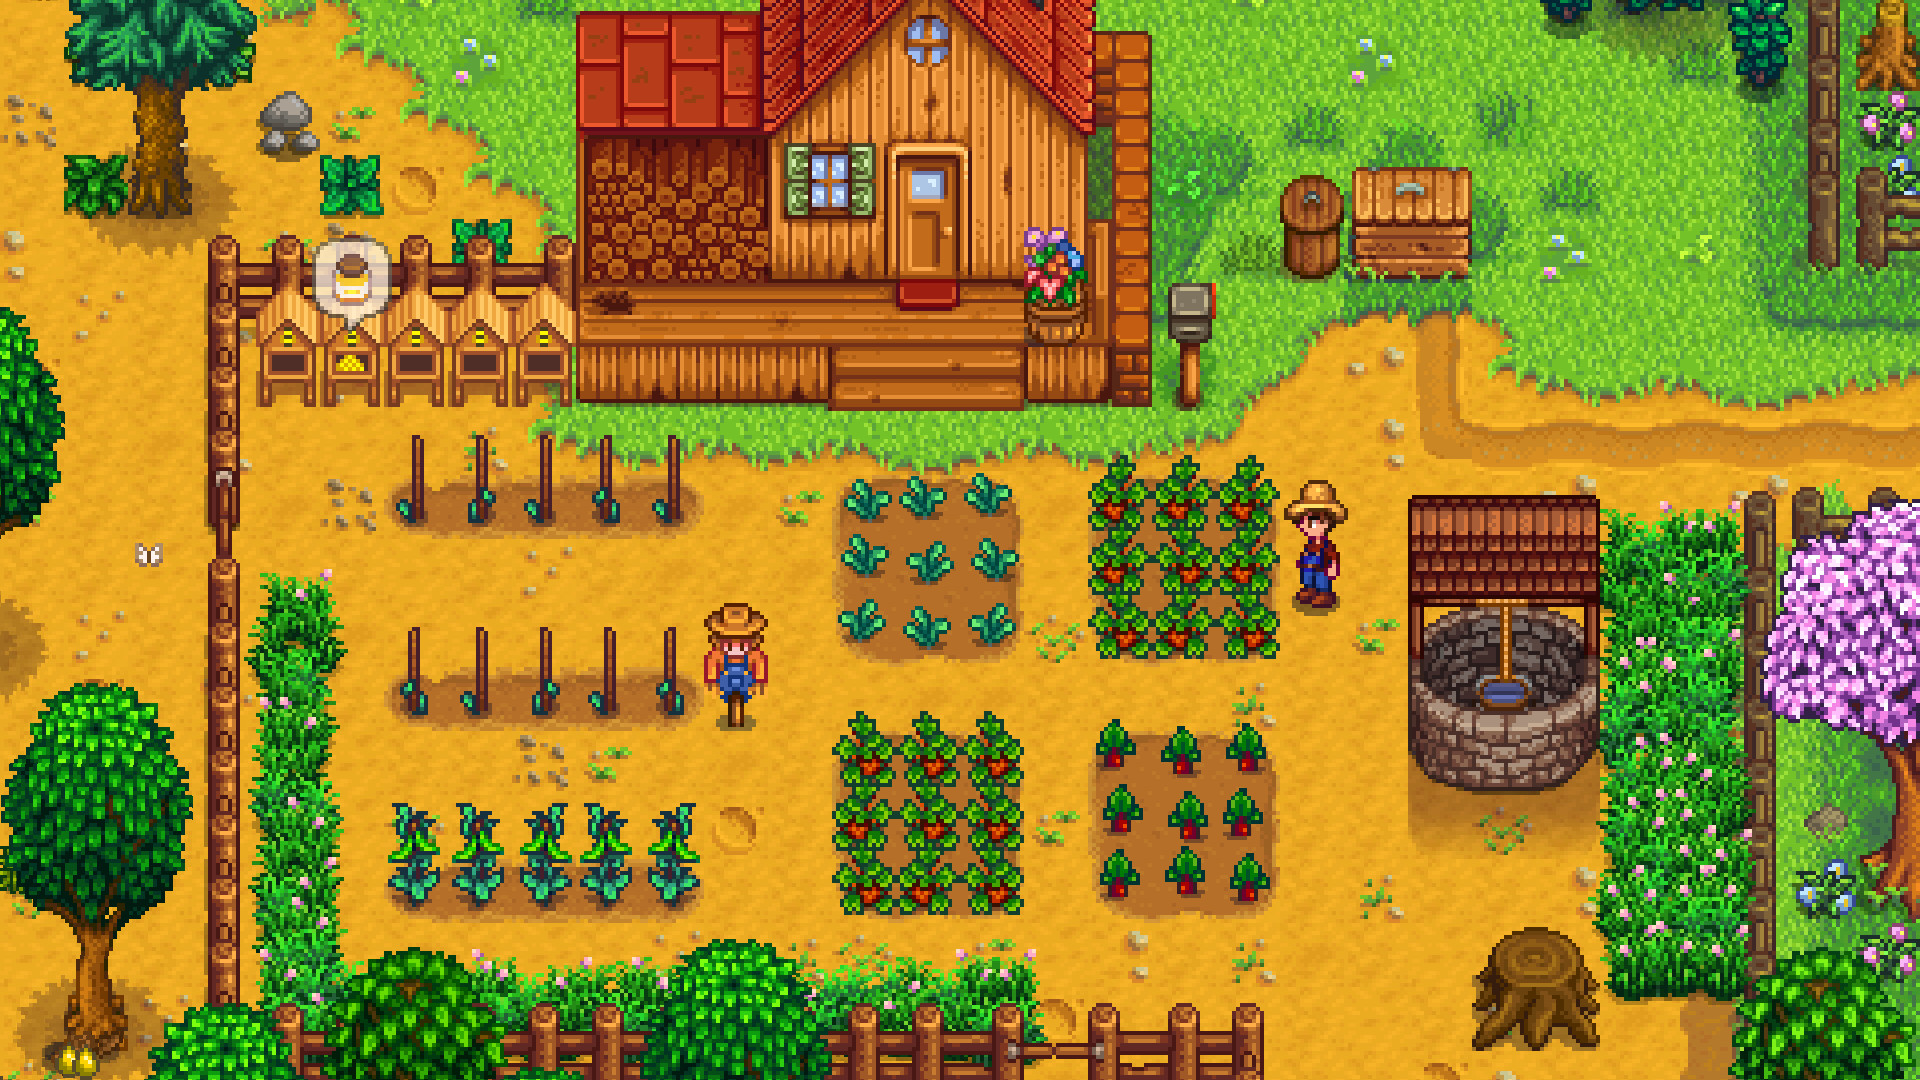 Stardew Valley, Eric Barone, Sickhead Games